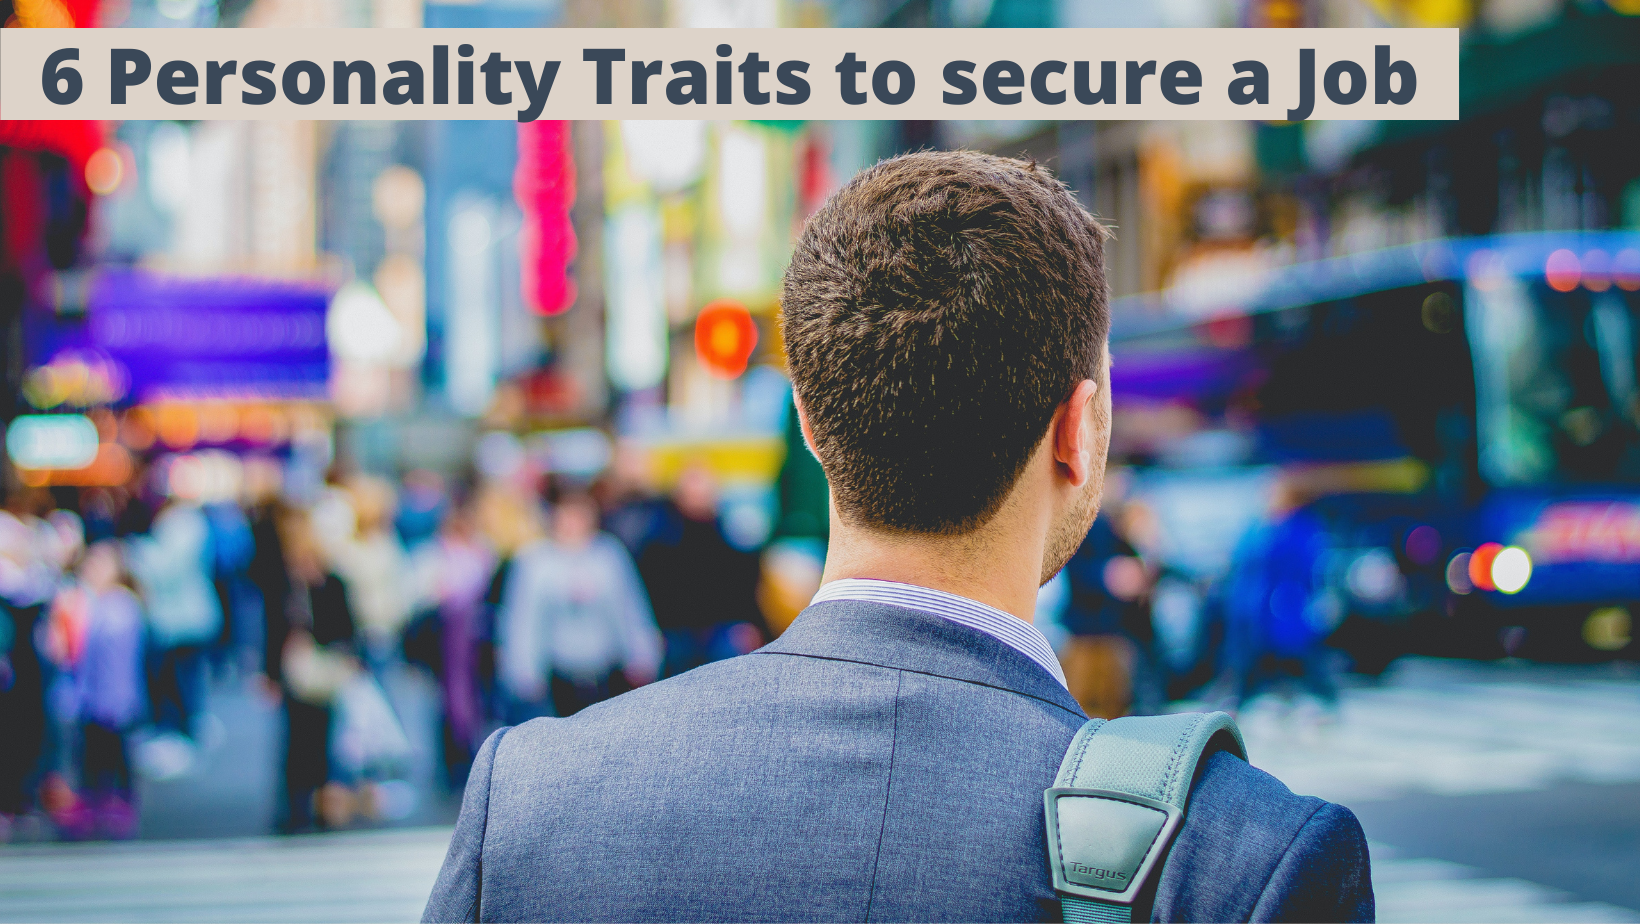 6 Personality Traits to secure a Job